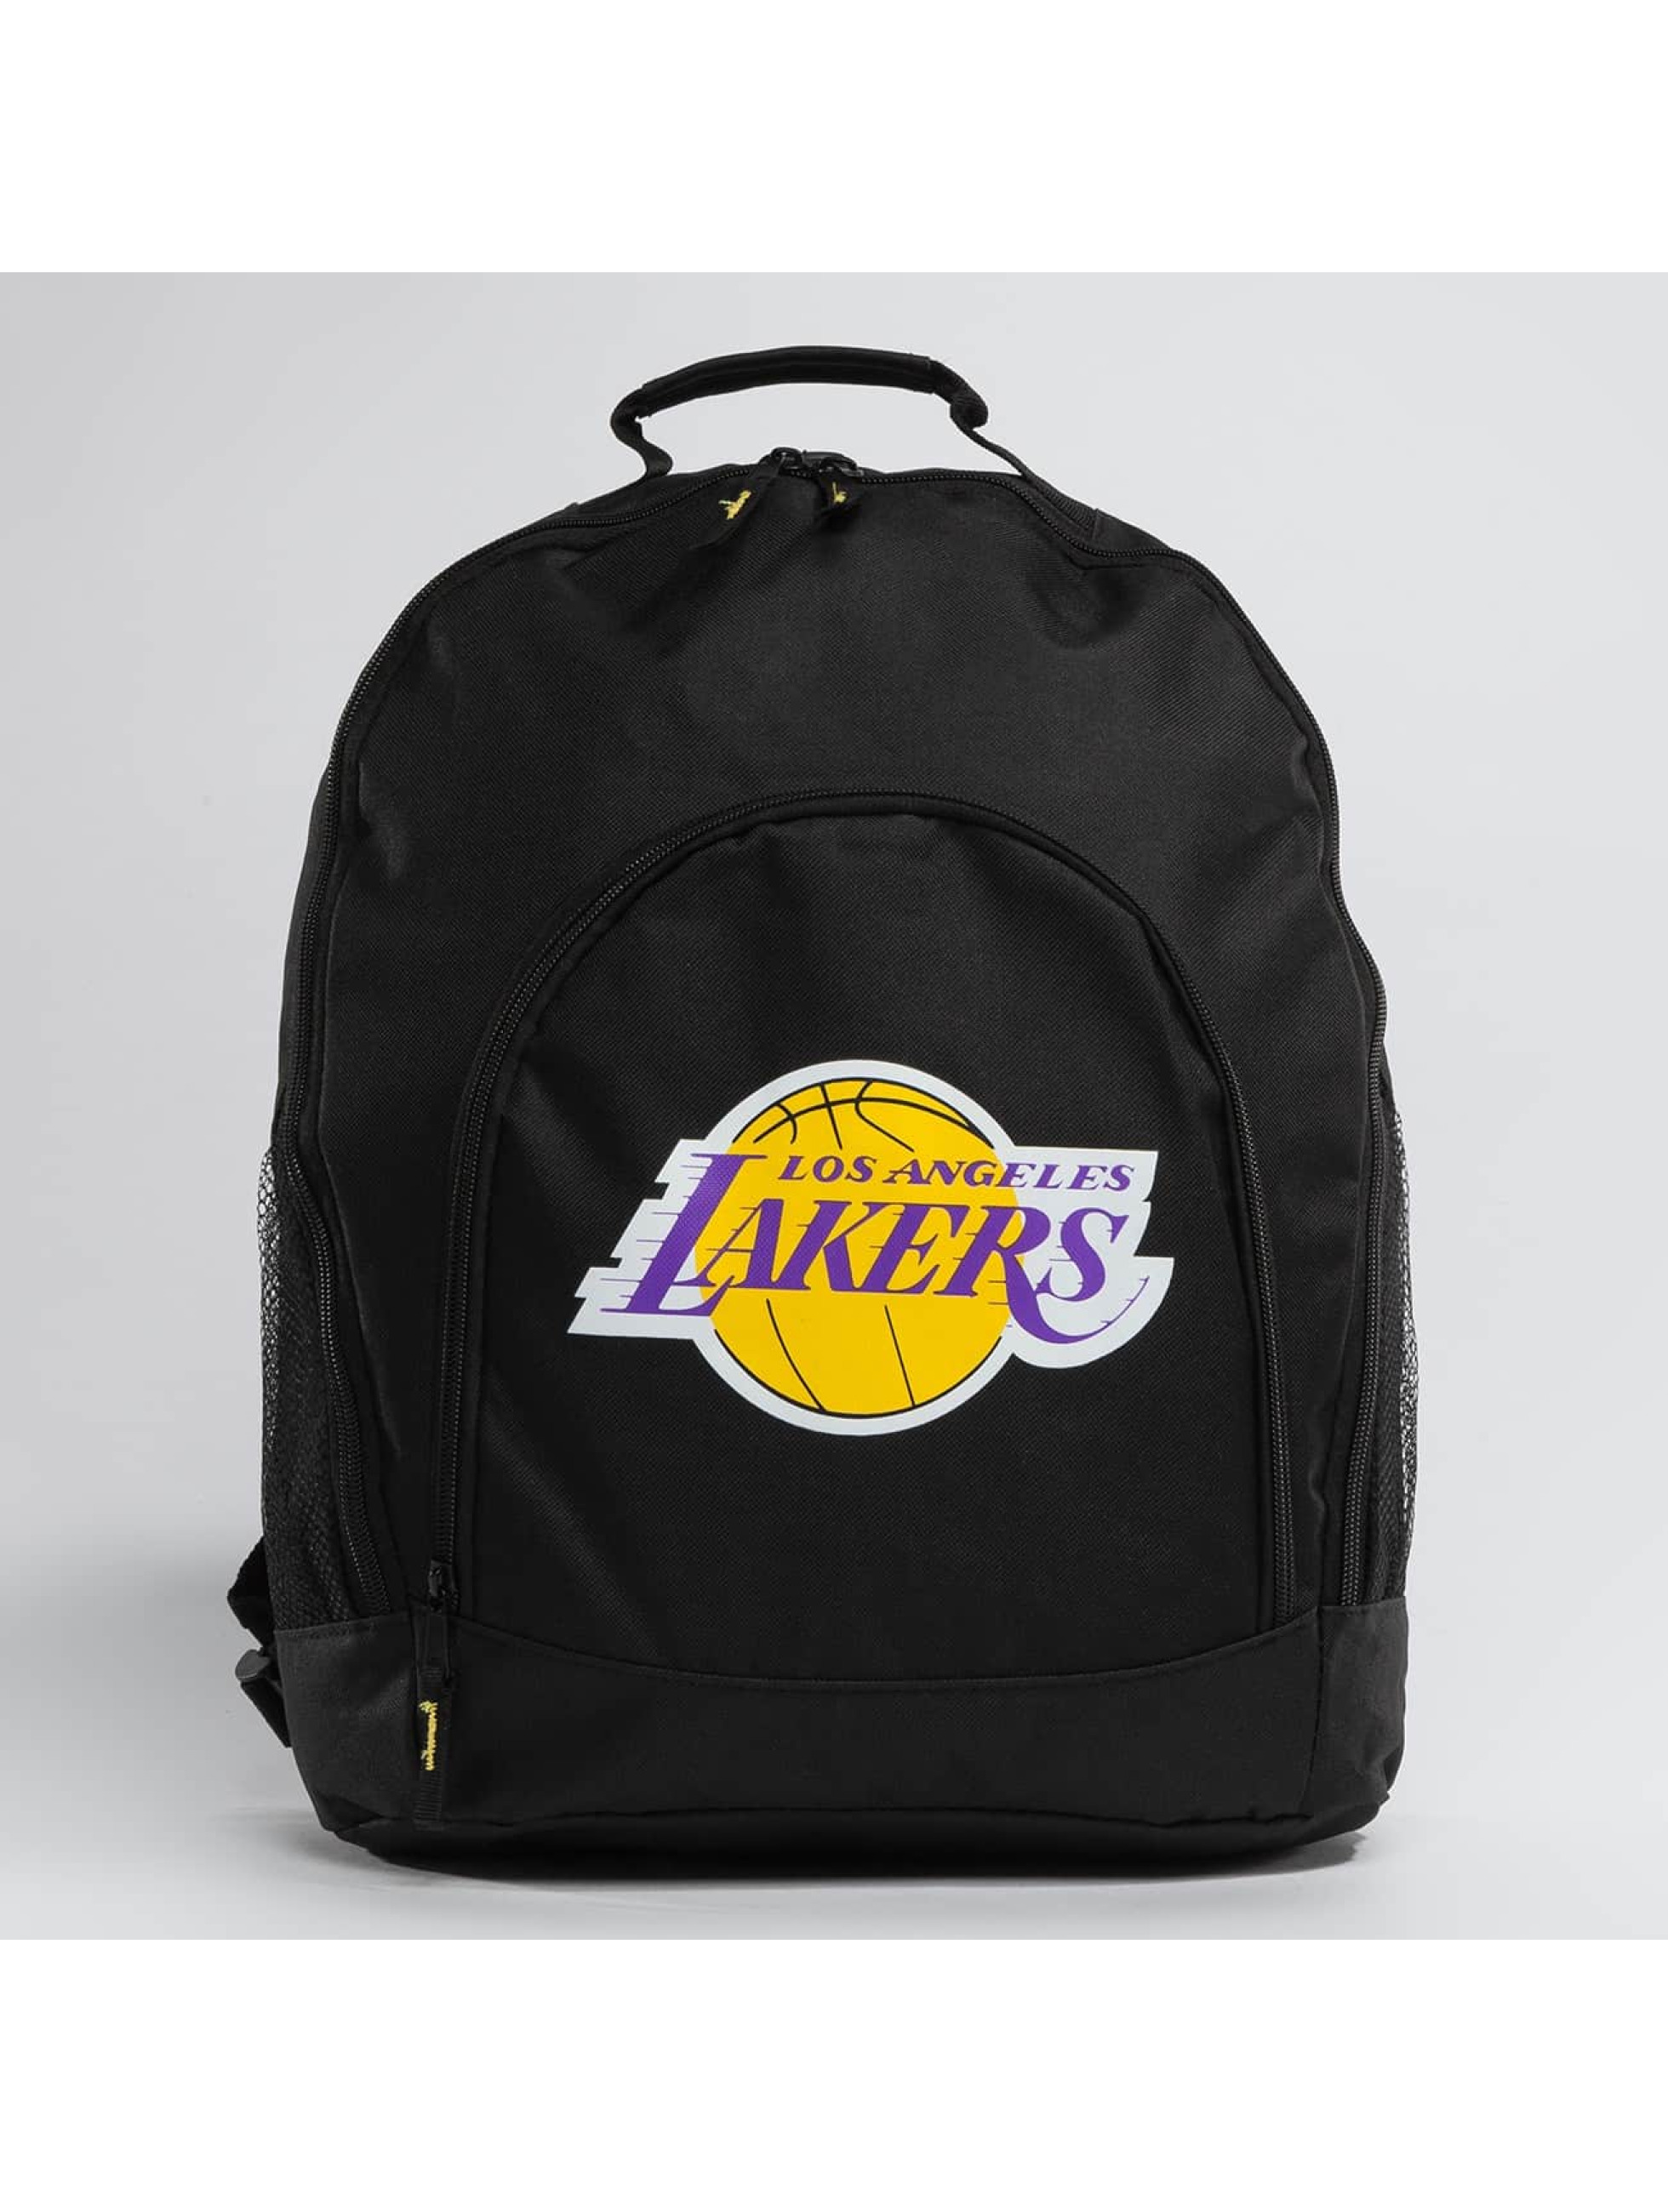 Forever Collectibles Rucksack NBA LA Lakers schwarz